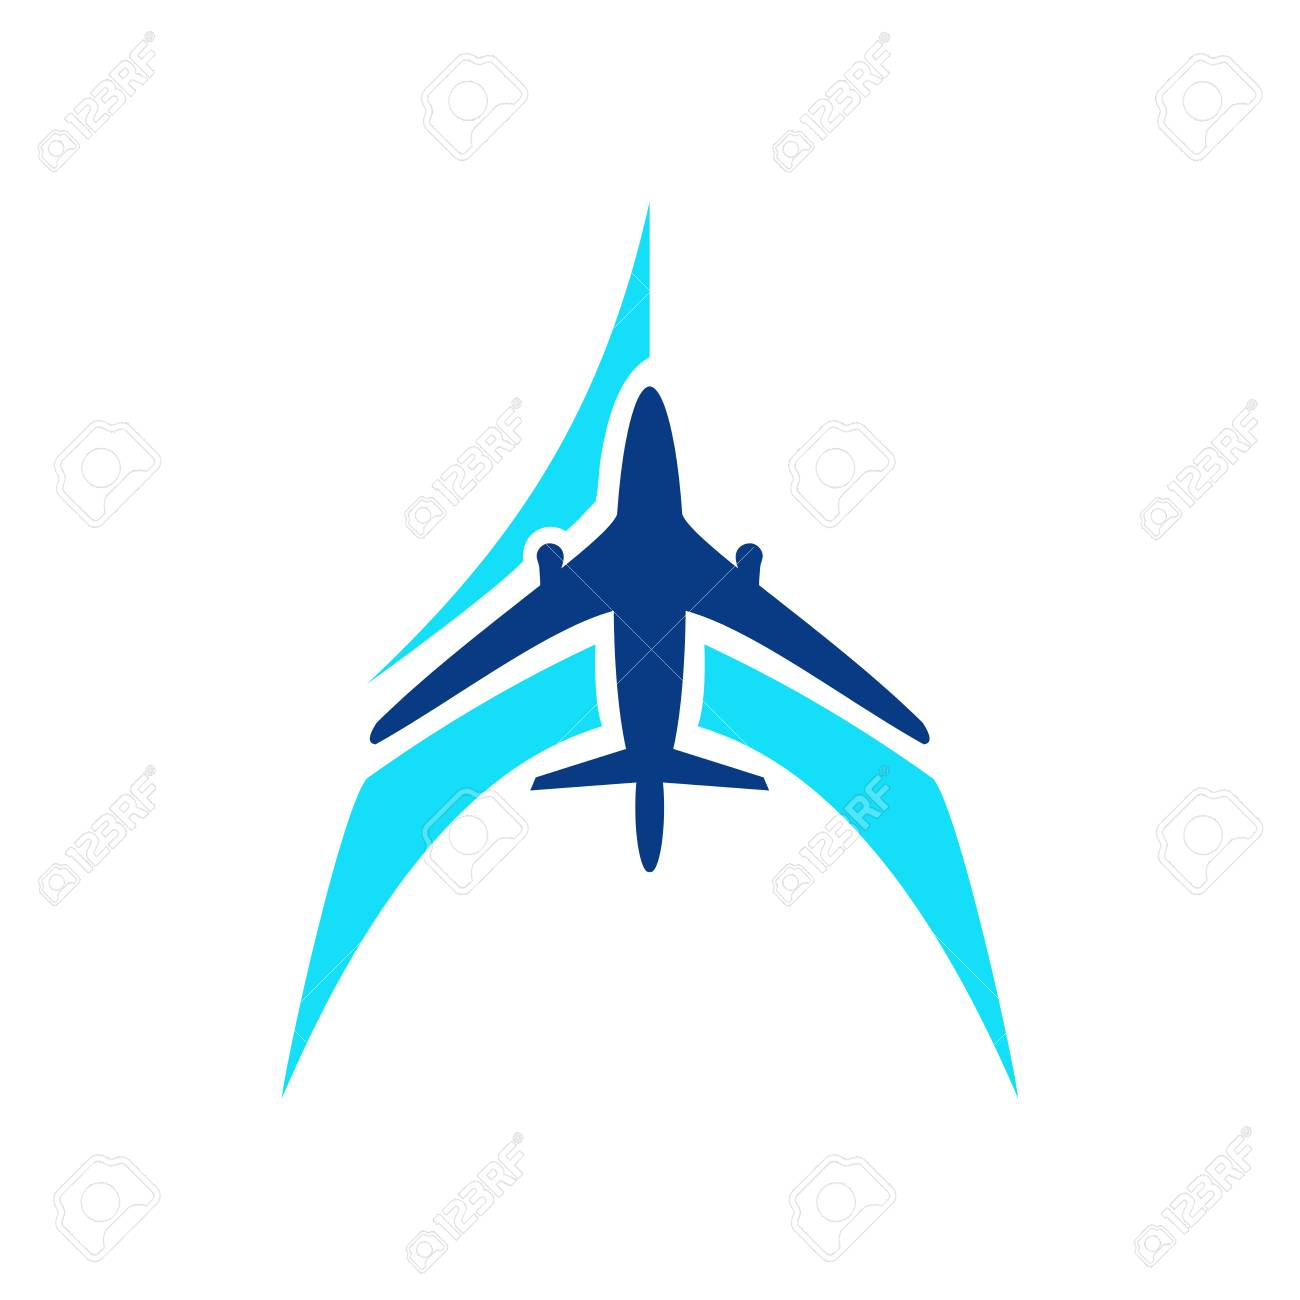 Airplane Symbol Vector Airplane Logo Template Aircraft Silhouette Royalty Free Cliparts Vectors And Stock Illustration Image 102330279